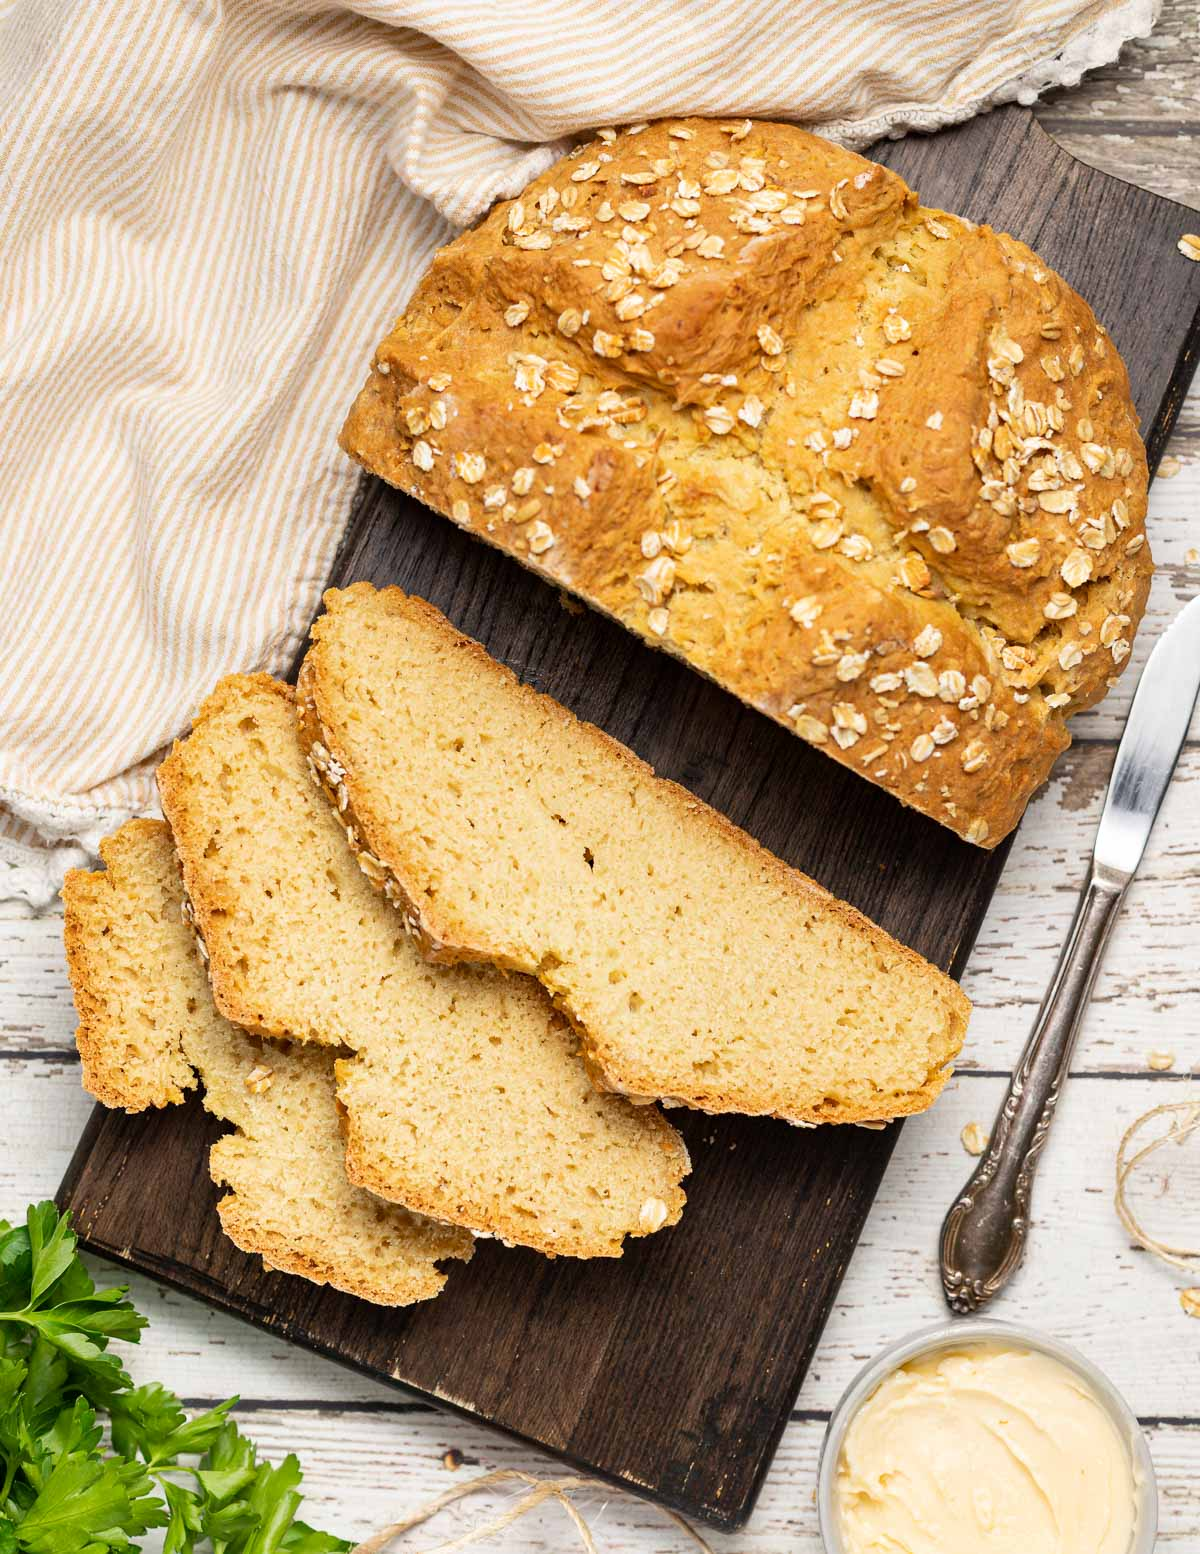 a partially sliced loaf of soda bread